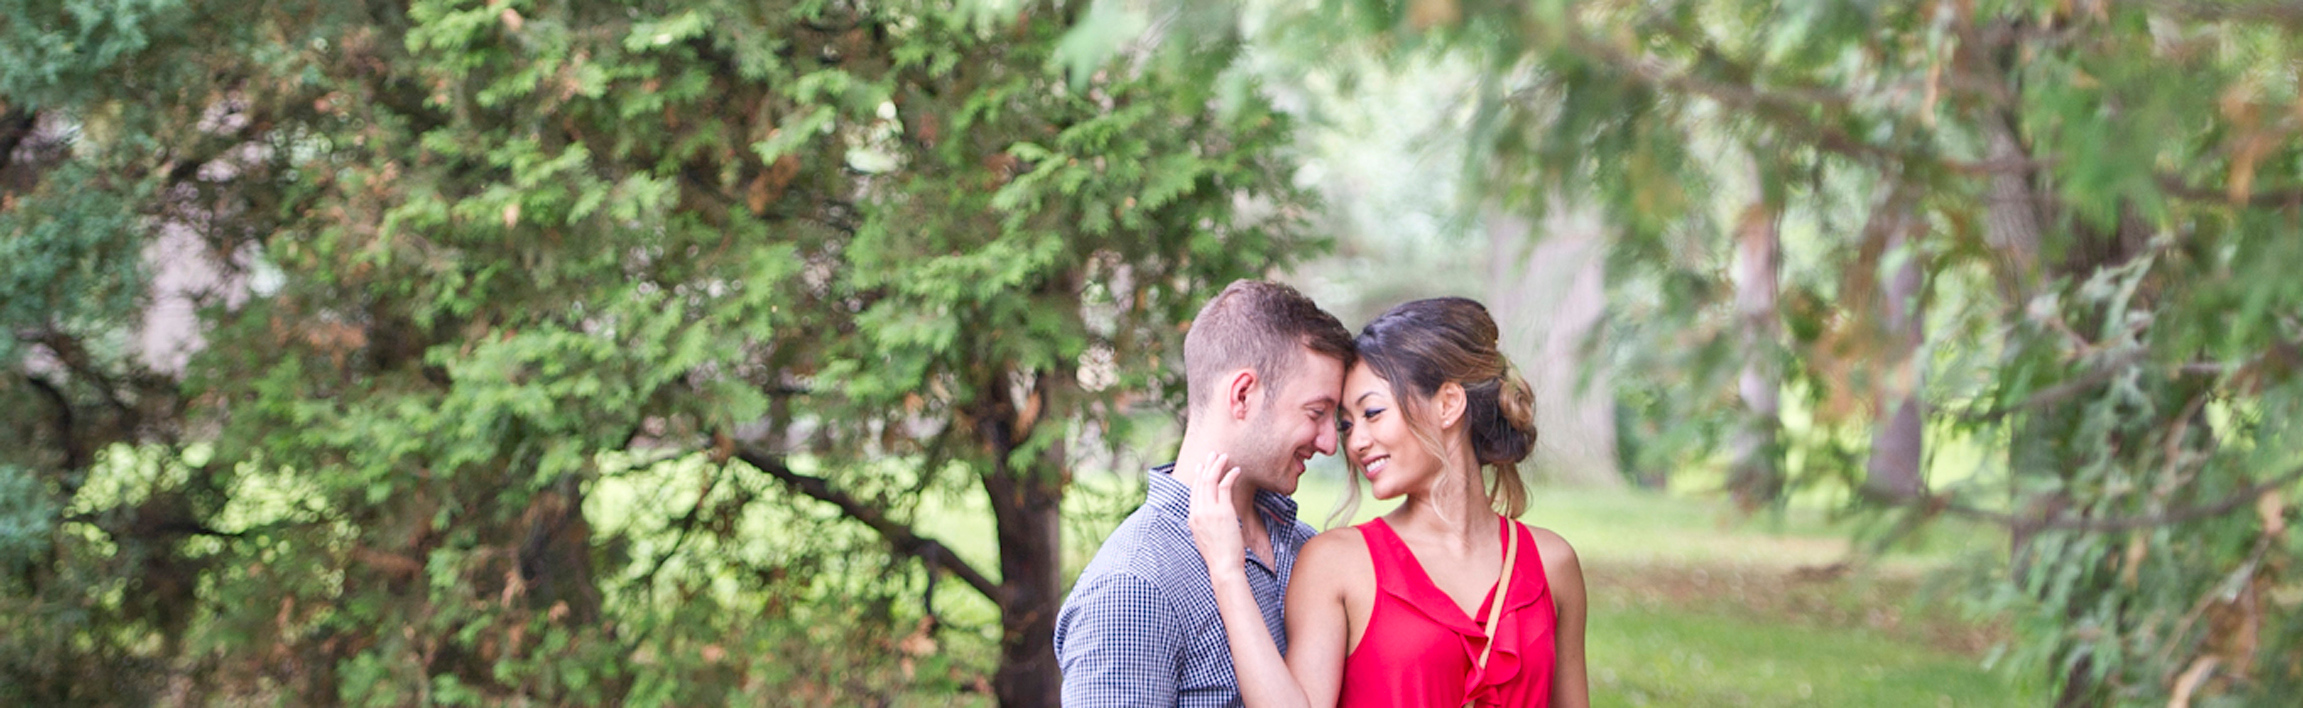 Montreal Engagement Photographer| Westmount Park | Greenhouse | Montreal Quebec | LMP Wedding Photography and Videography